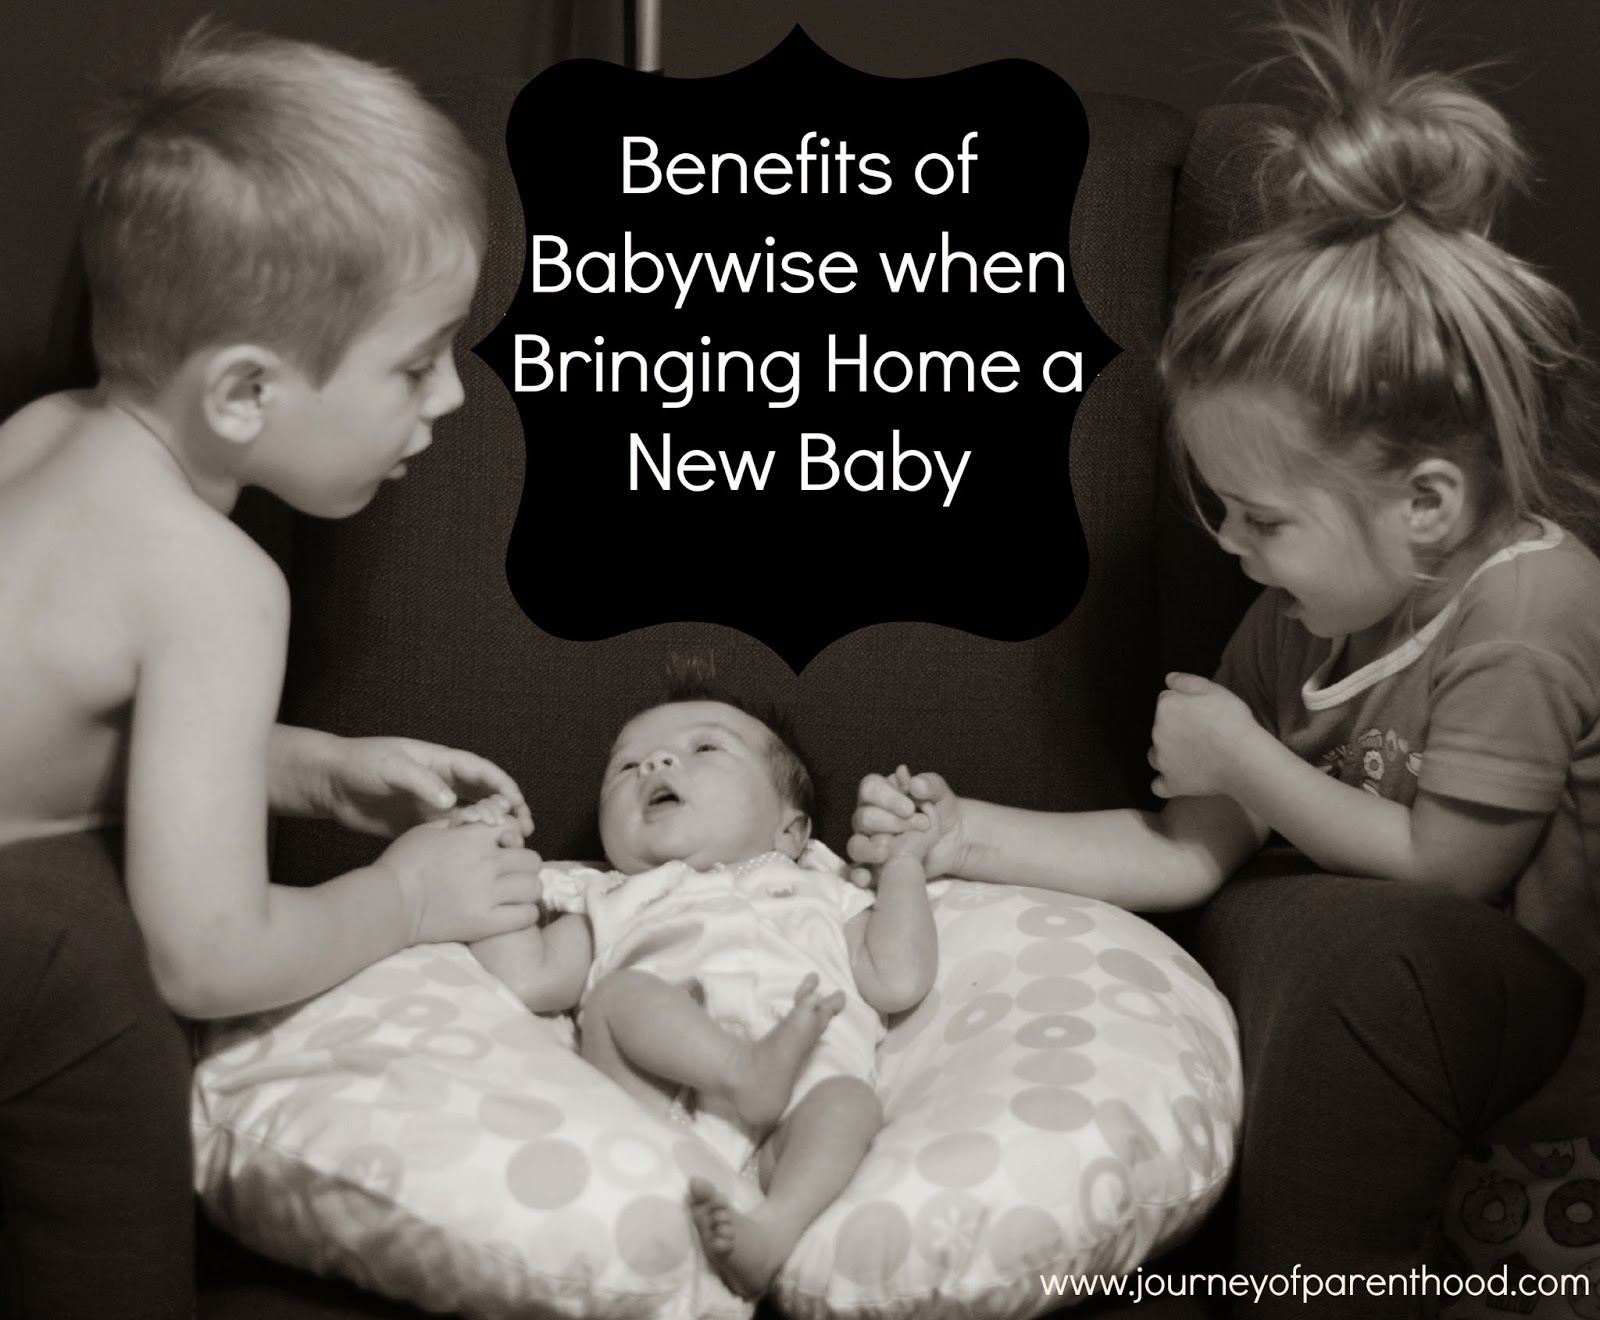 Babywise With a New Baby: Benefits When Bringing Home a Newborn